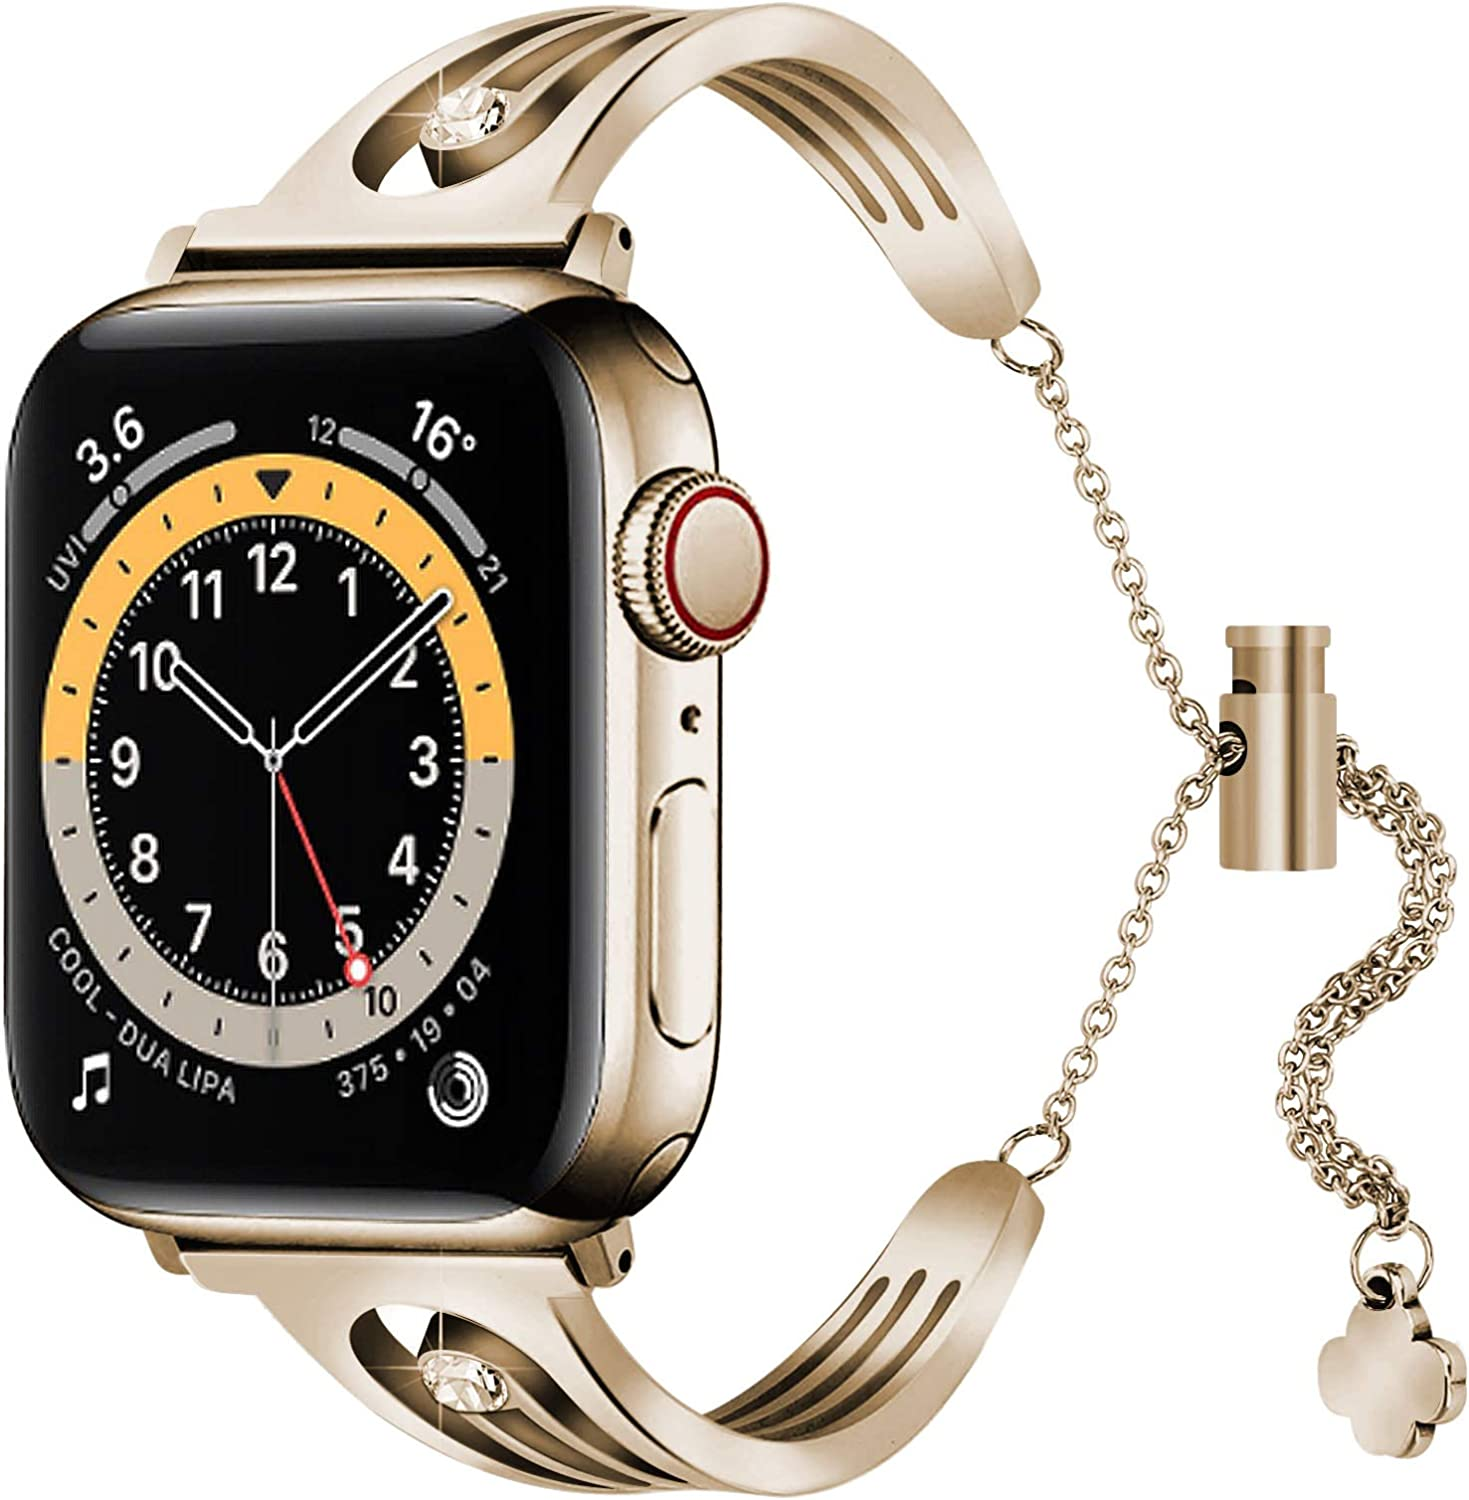 KAYSEUN 316 Stainless Steel Replacement Bands Compatible with Apple Watch SE & 6 44mm 40mm, Shining Polished Bracelet Wrist Watch Band for Women (Champagne Gold, 40mm/38mm)